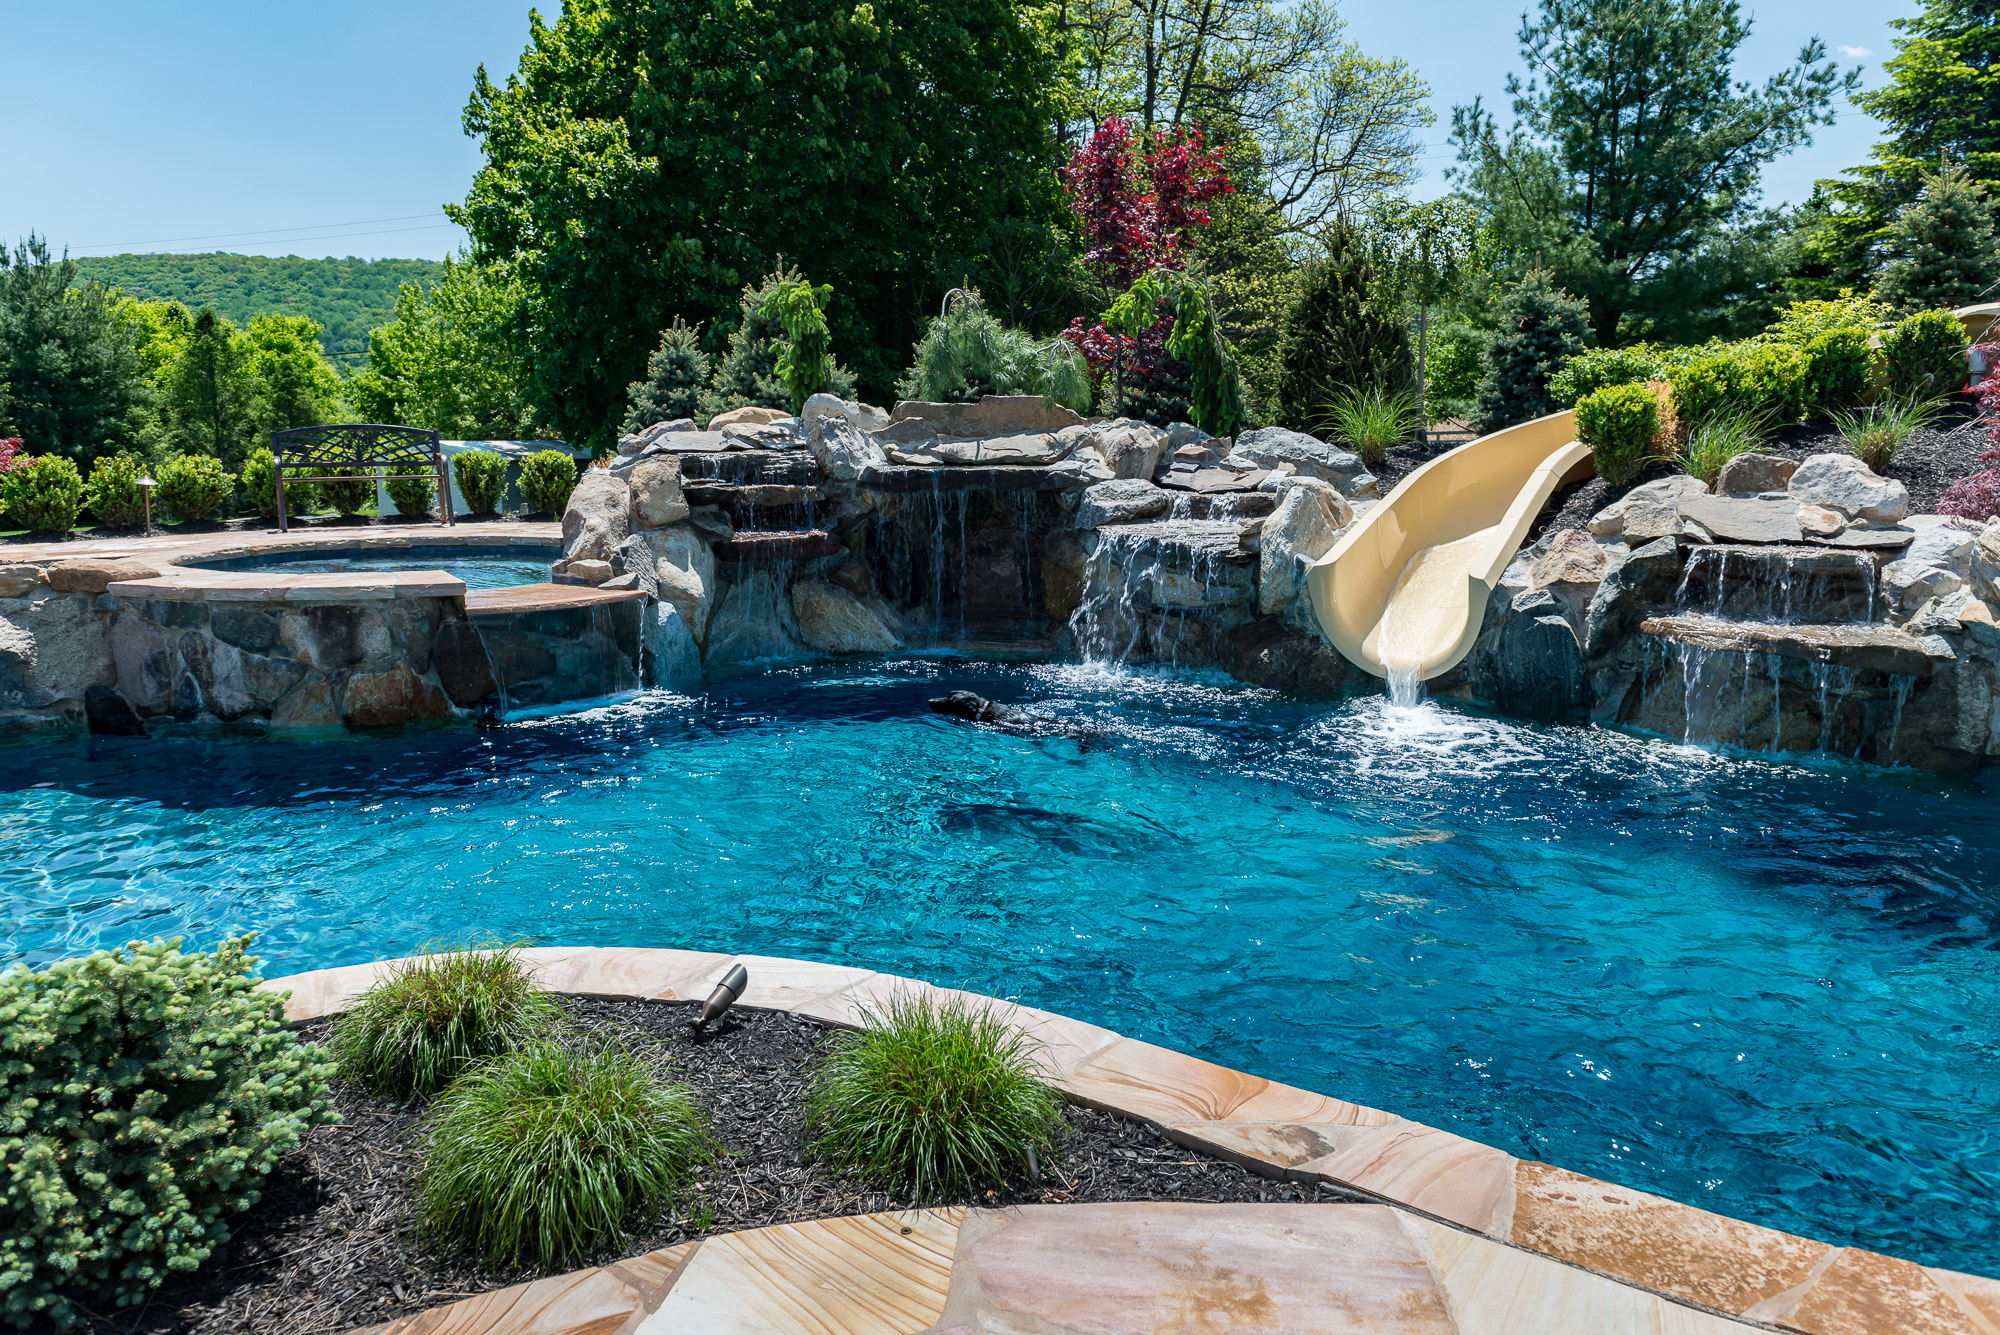 Bloomsbury nj custom inground swimming pool design for In ground swimming pool contractors